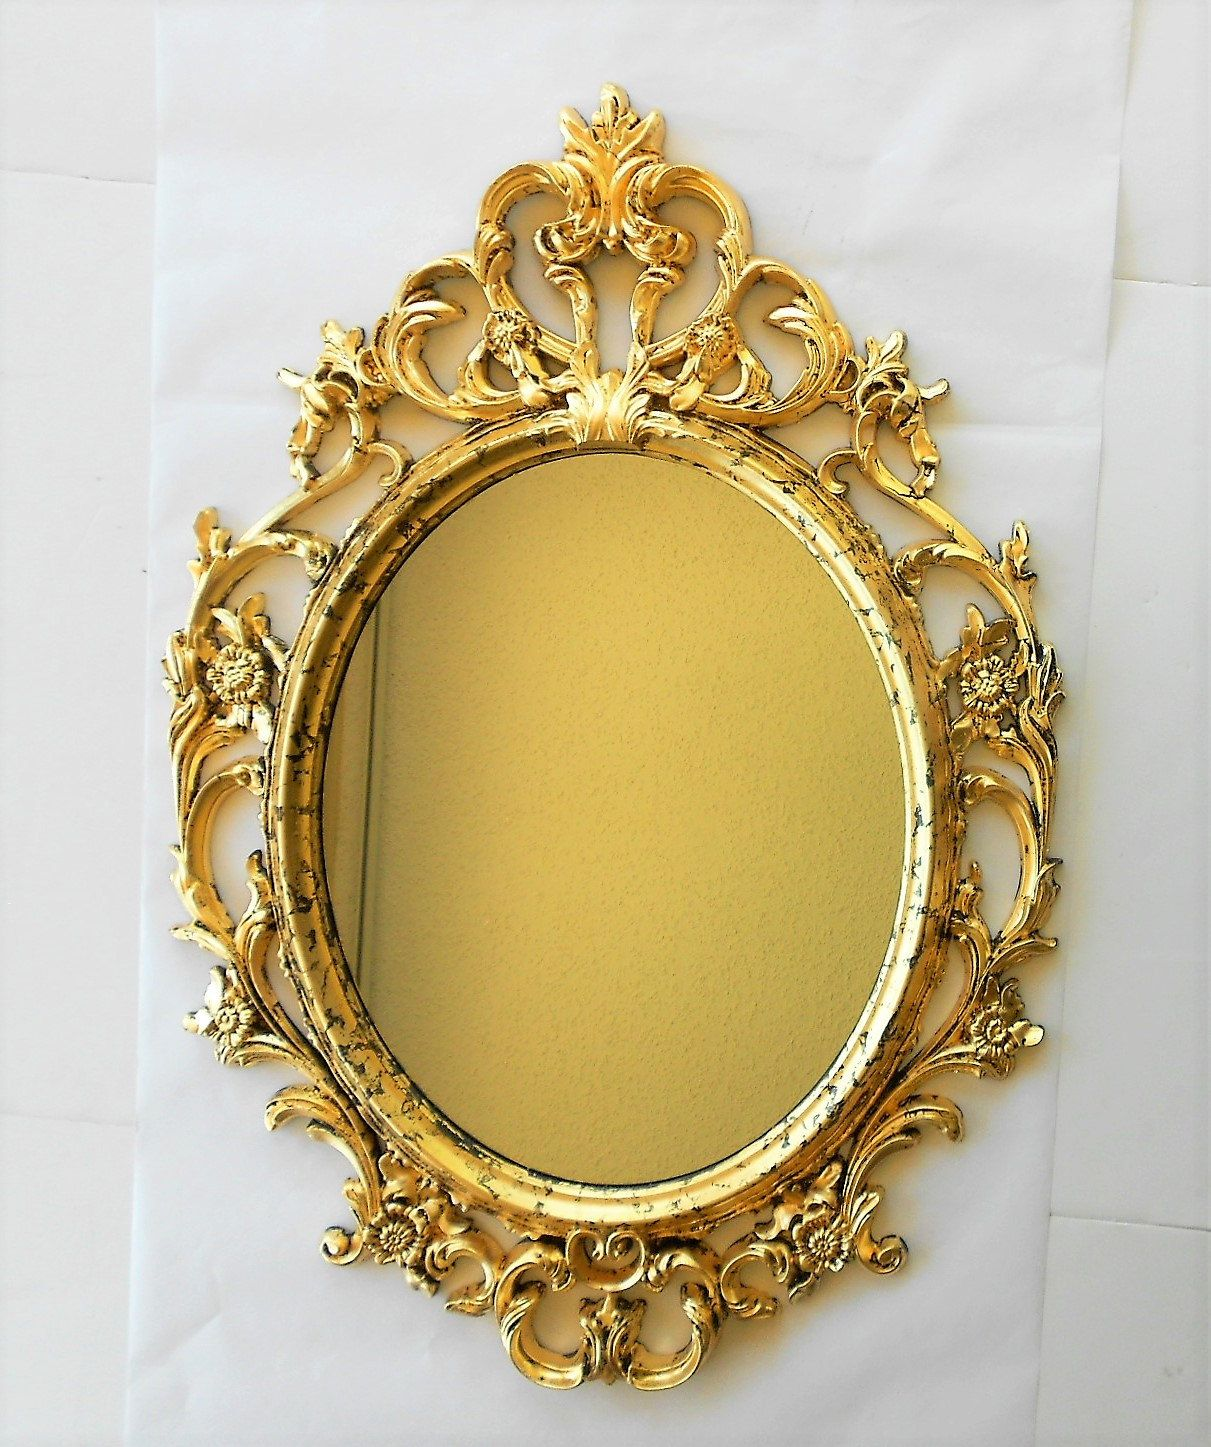 33 5 H Mirror Gold Gold Frame Oval Mirror Large Oval Etsy Gold Framed Mirror Oval Mirror Gold Frame